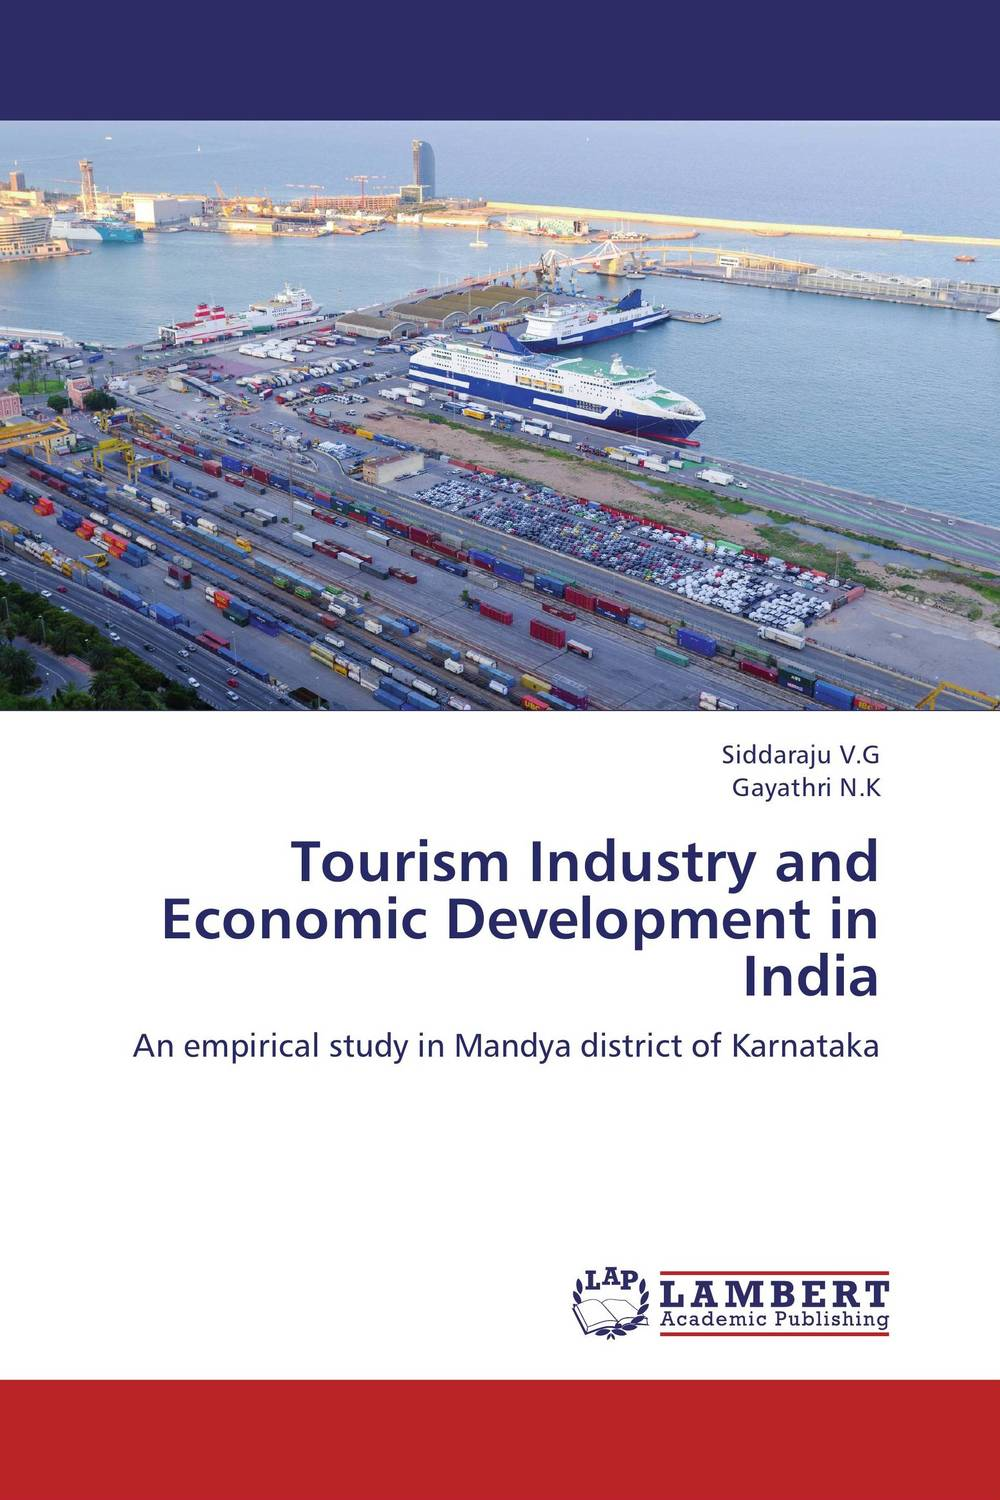 Tourism Industry and Economic Development in India olorunfemi samuel oluwaseyi tourism development in nigeria